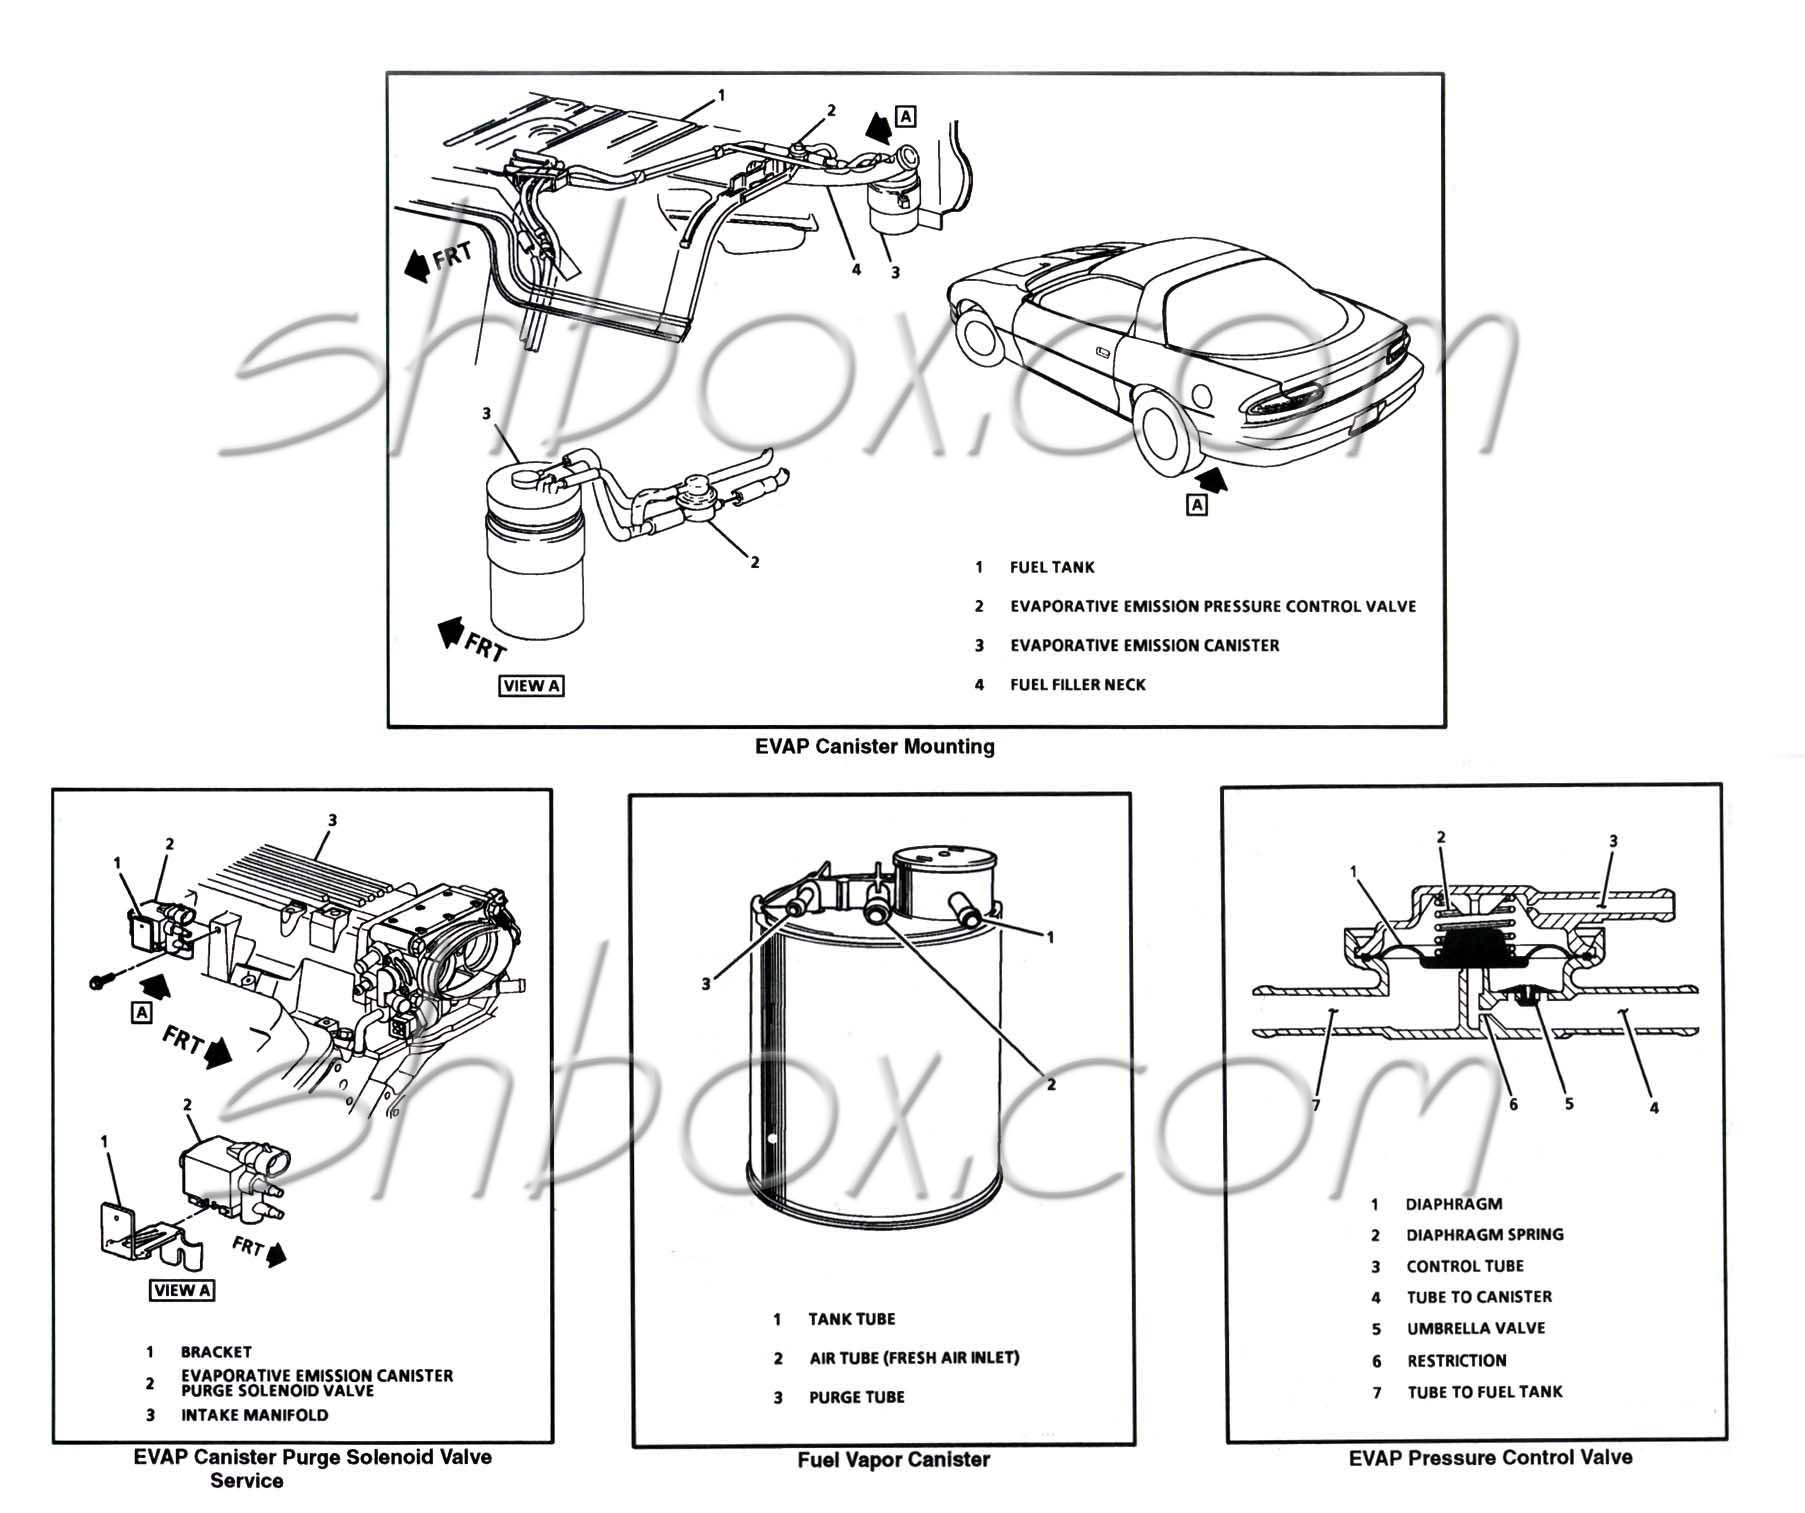 96 Chevy Astro Van Engine Diagram further 1piq2 No Floor Heat 2000 Chevy Blazer Heat together with Horn Relay Location Chevy Astro Van additionally 1994 Gmc Sonoma Vacuum Diagram also 702933 Need Help Lt1 Water Pump. on 2000 astro van heater vacuum control